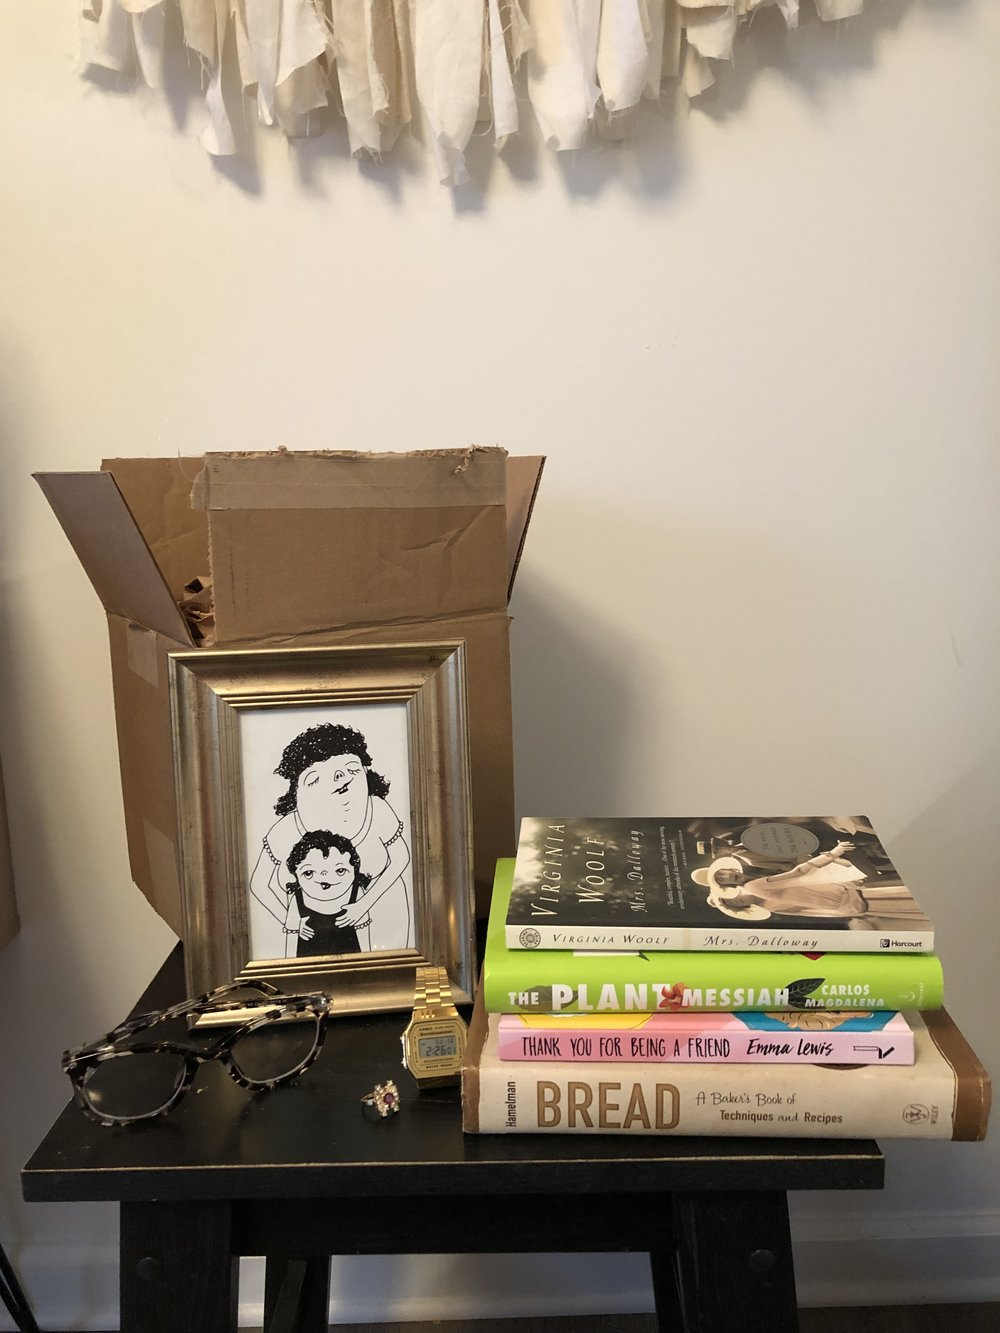 Image description: A stack of books, a pair of glasses, a ring, a watch, and a drawing sit on a chair in front of an open cardboard box, indicating sentimental objects included in one Home in a Box.